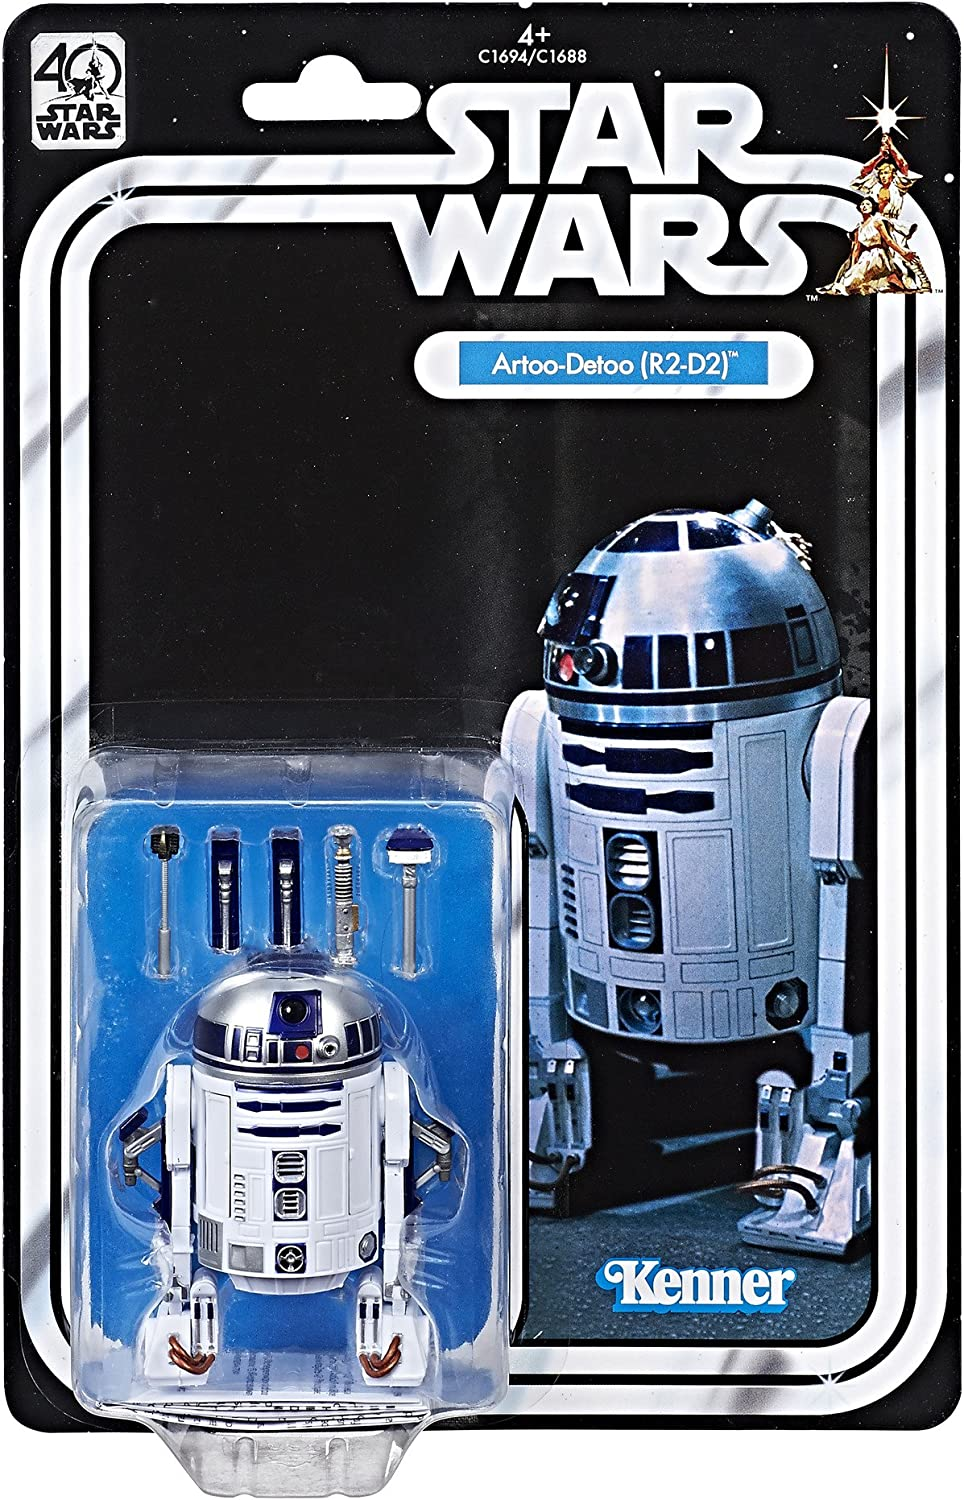 R2-D2 Kenner Star Wars 40th Anniversary Artoo-Detoo Figure